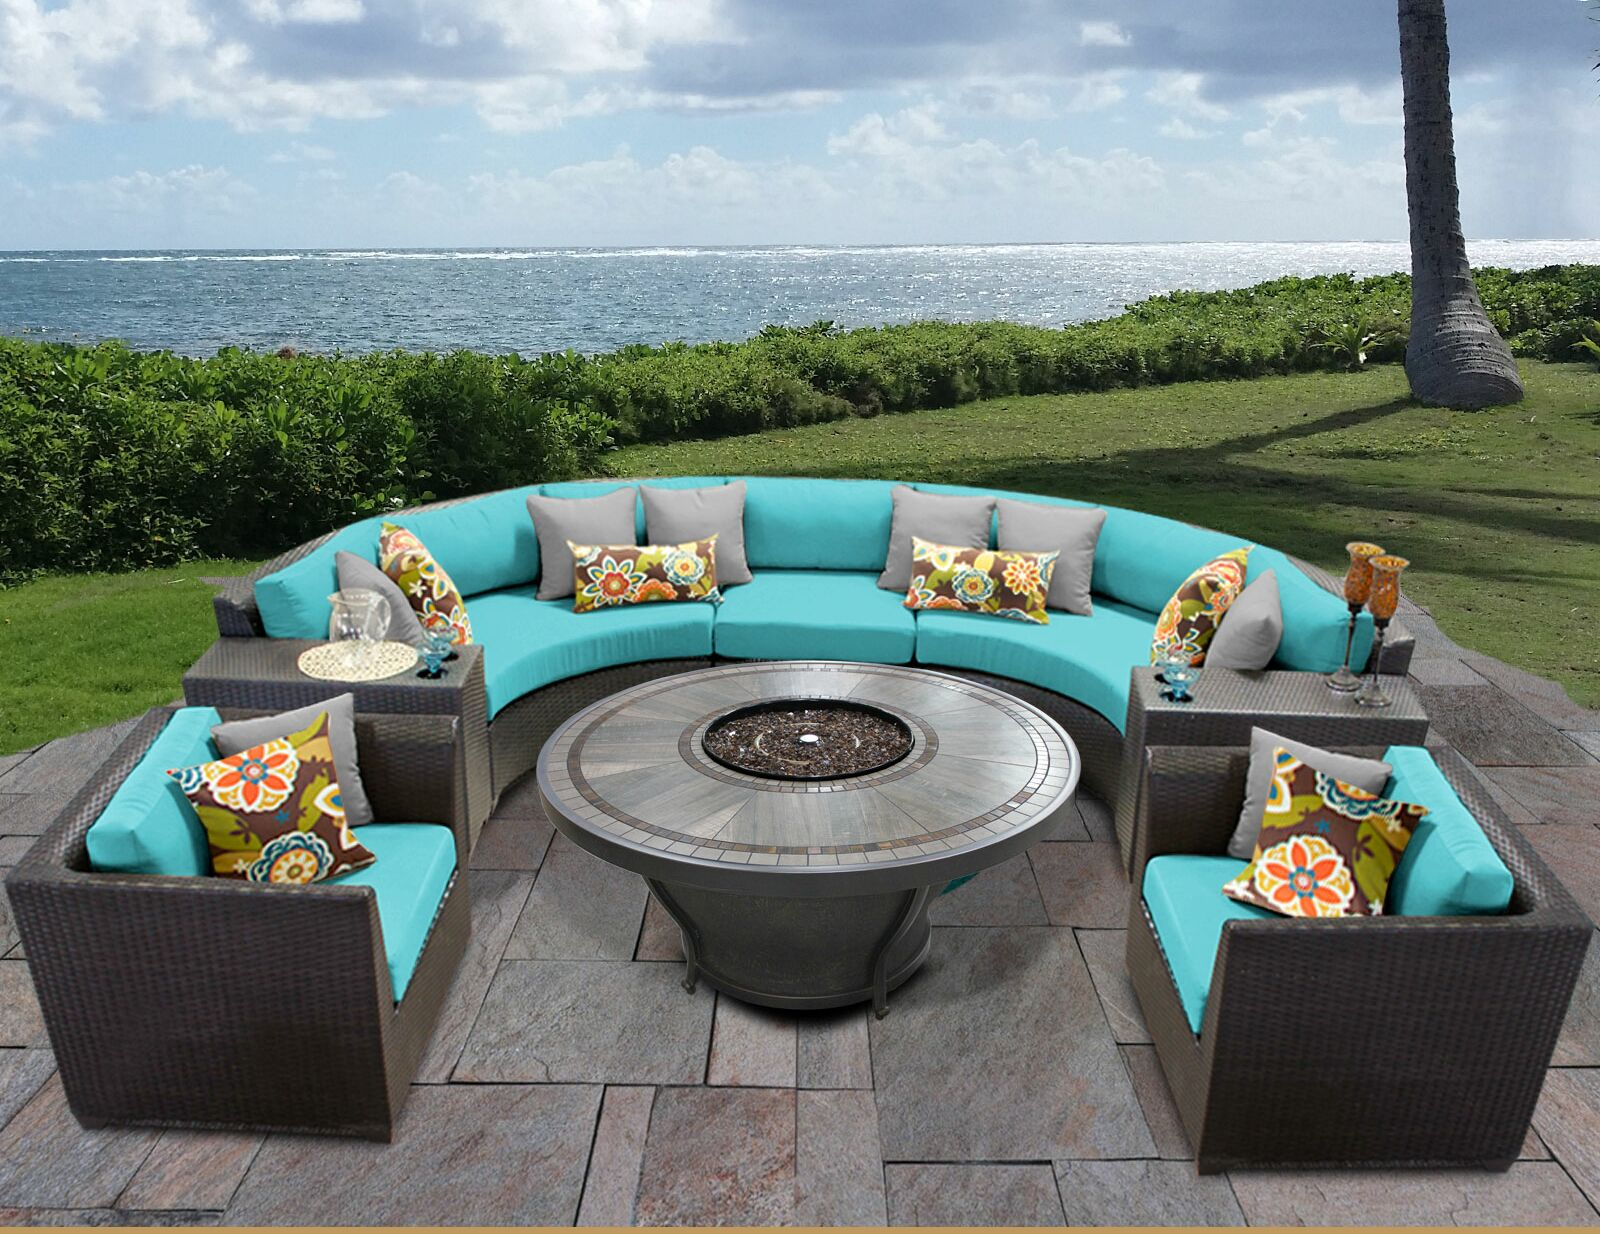 Barbados 8 Piece Sectional Set with Cushions Cushion Color: Aruba